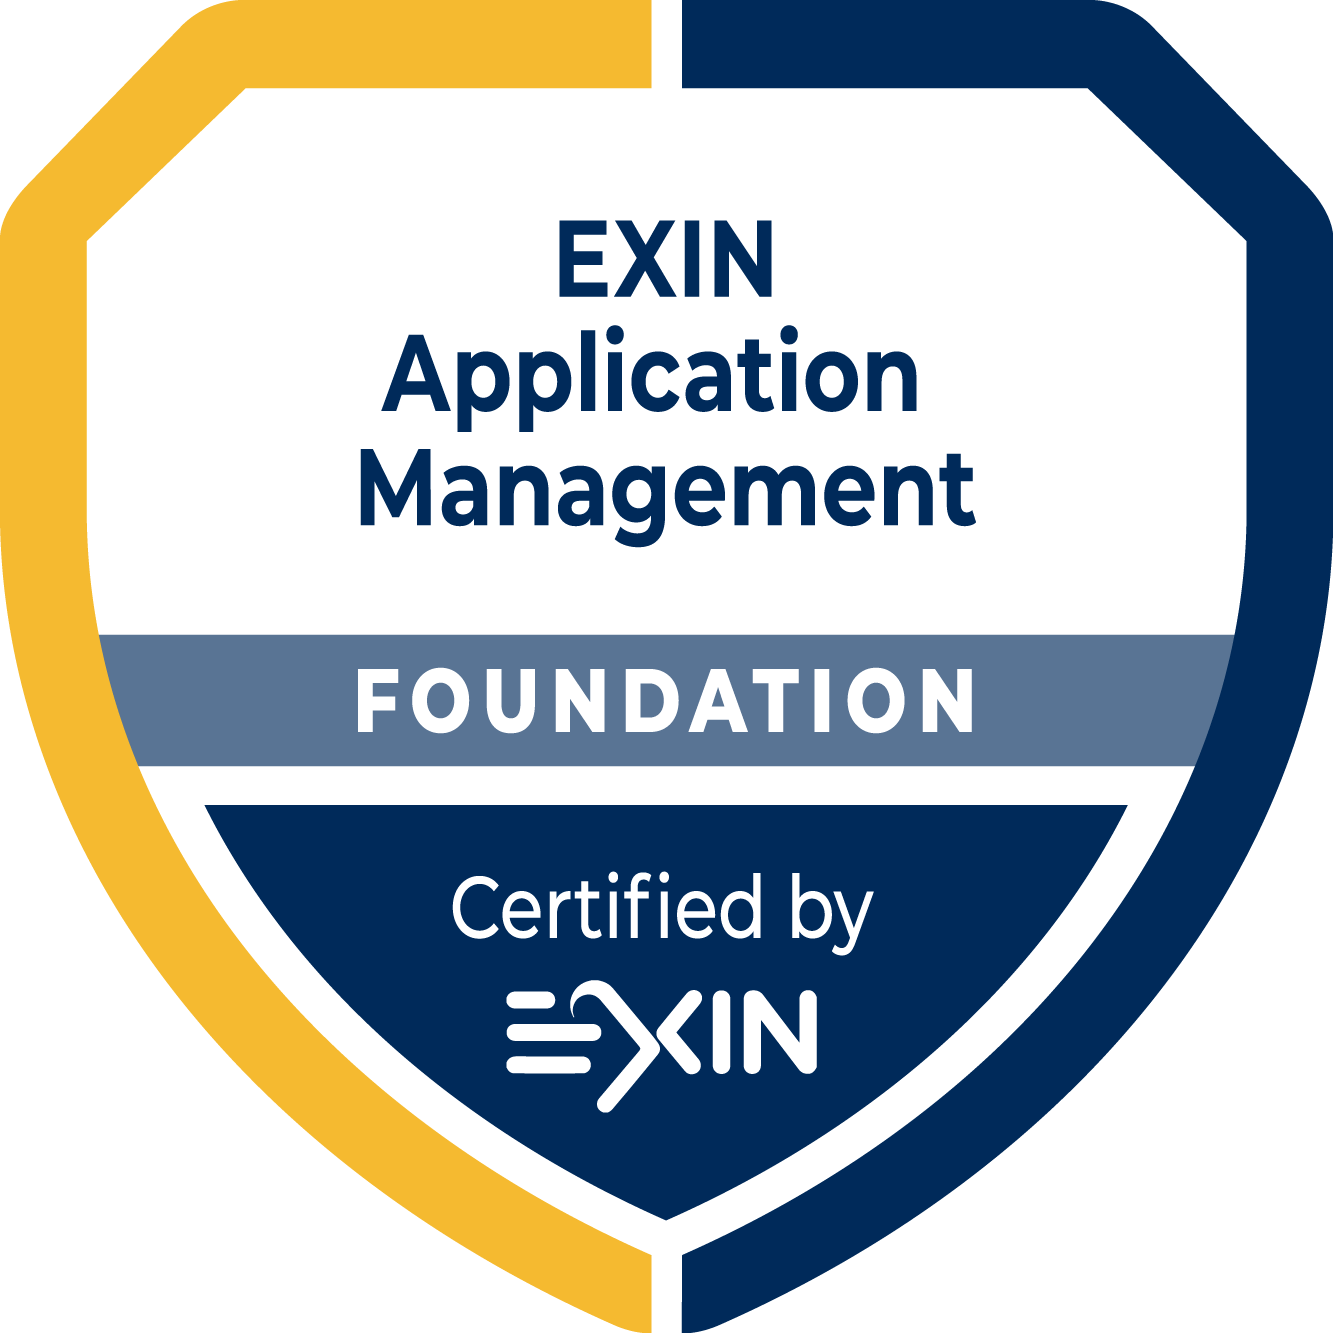 EXIN Application Management Foundation with reference to ASL